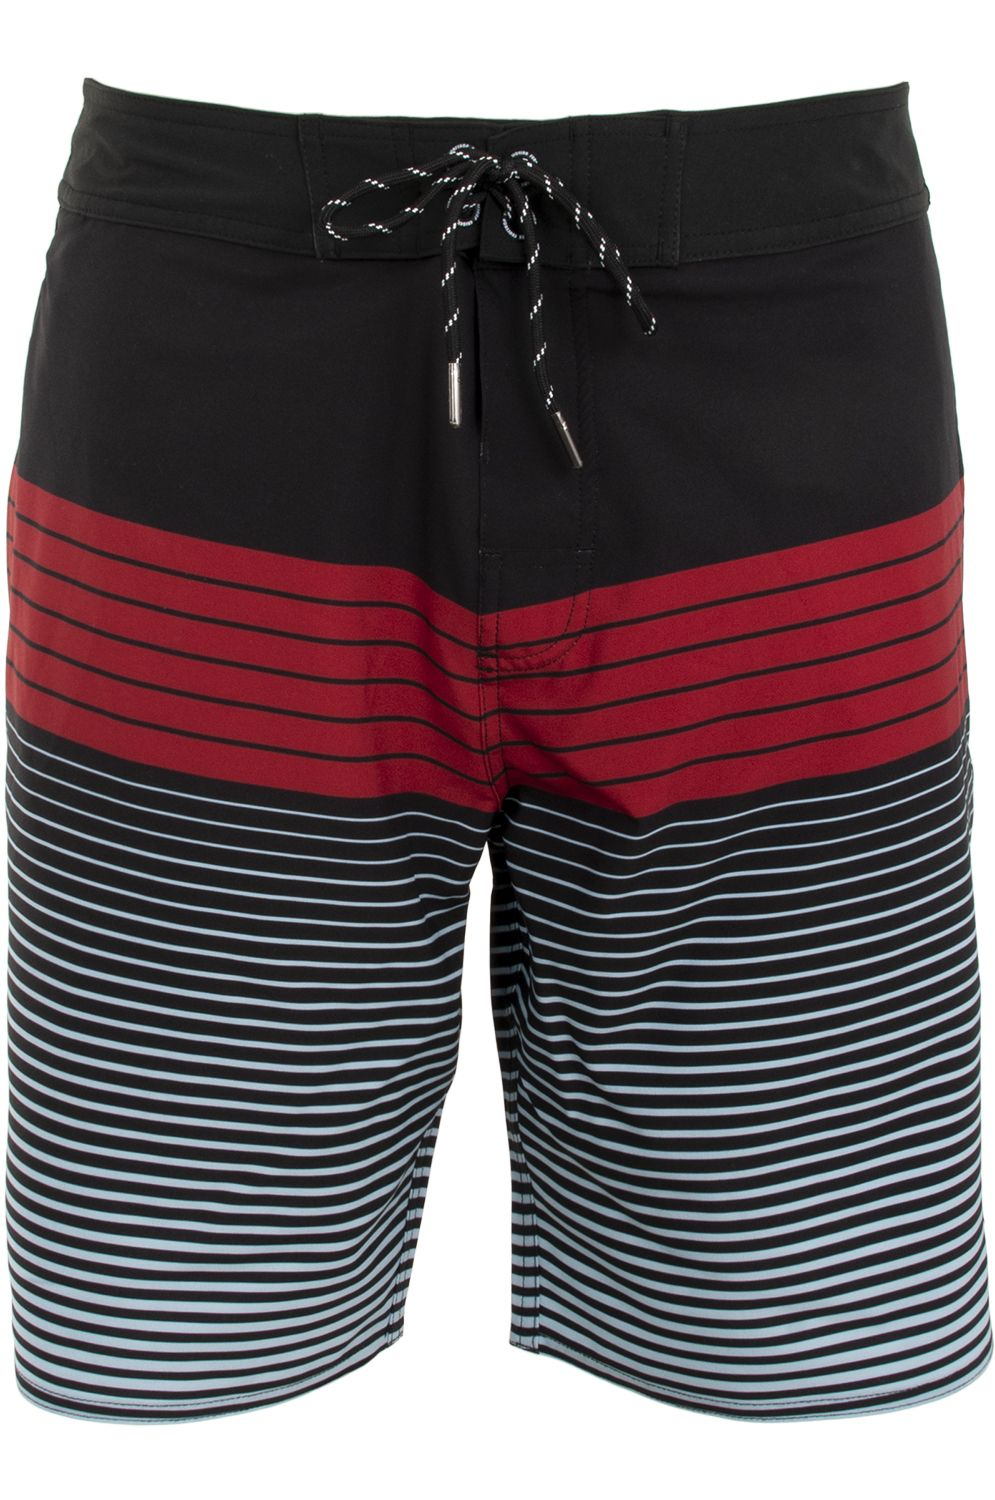 Boardshorts Ericeira Surf Skate SO YOUNG Red